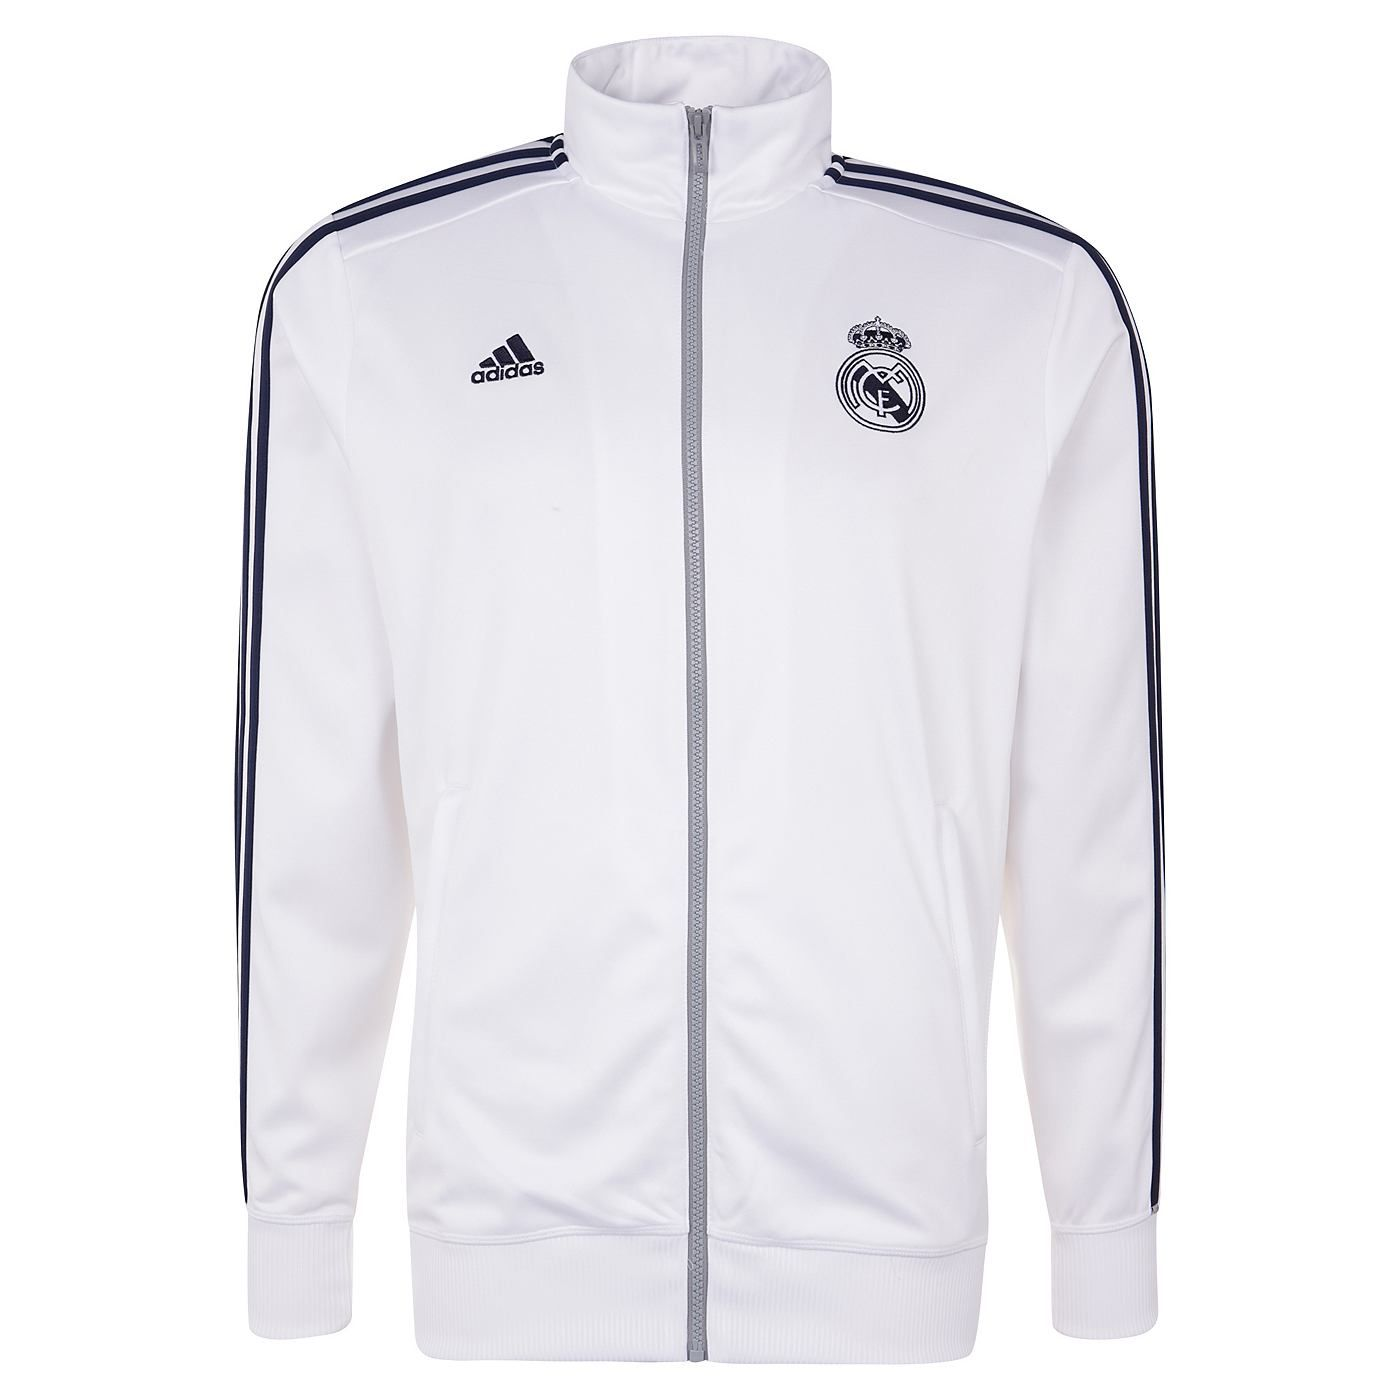 Adidas Real Madrid Trainingsjacke Herren weiß gold im